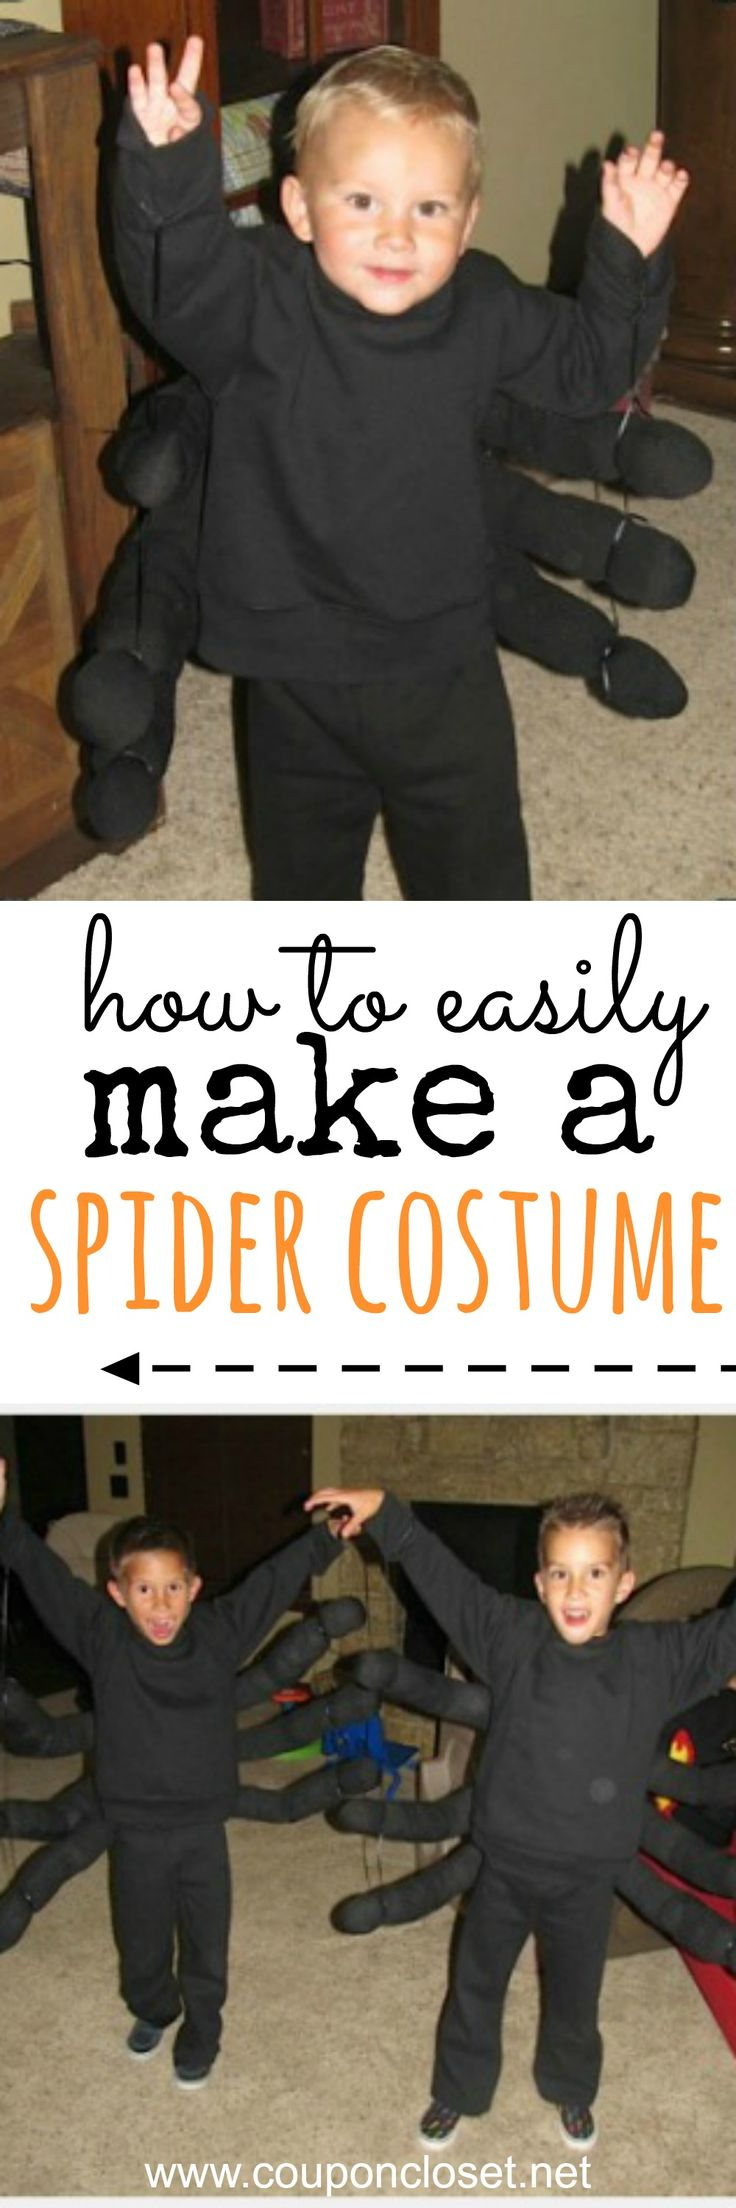 Easy homemade Halloween costumes for kids - how to make a spider costume. No sewing needed!